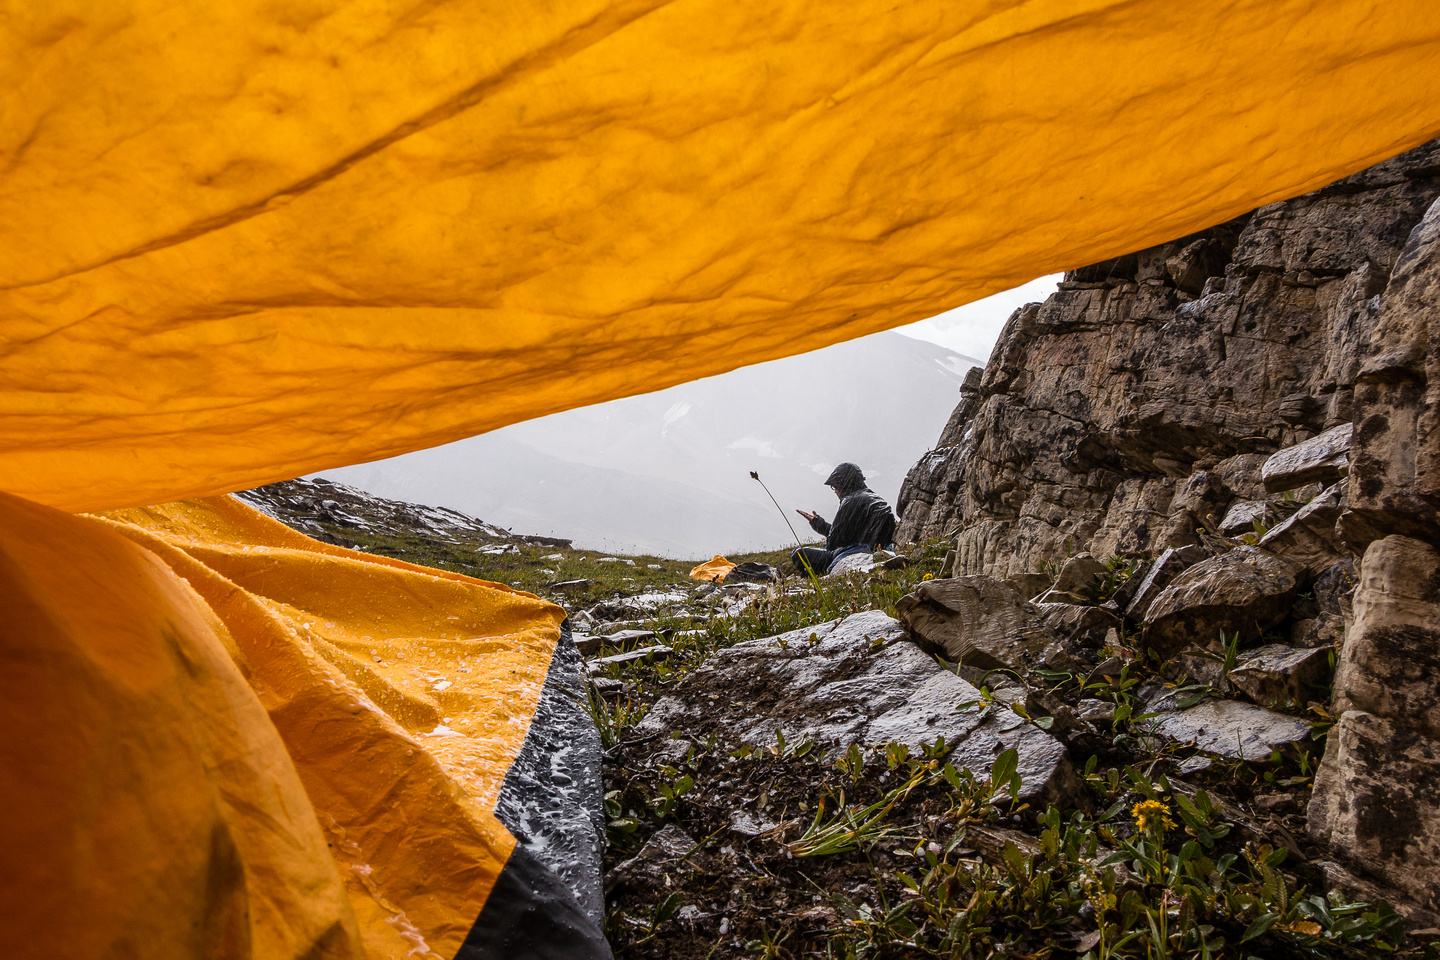 The view from under my tarp. Eric is sitting in the rain rather than get cooped up in his bivy sack already.